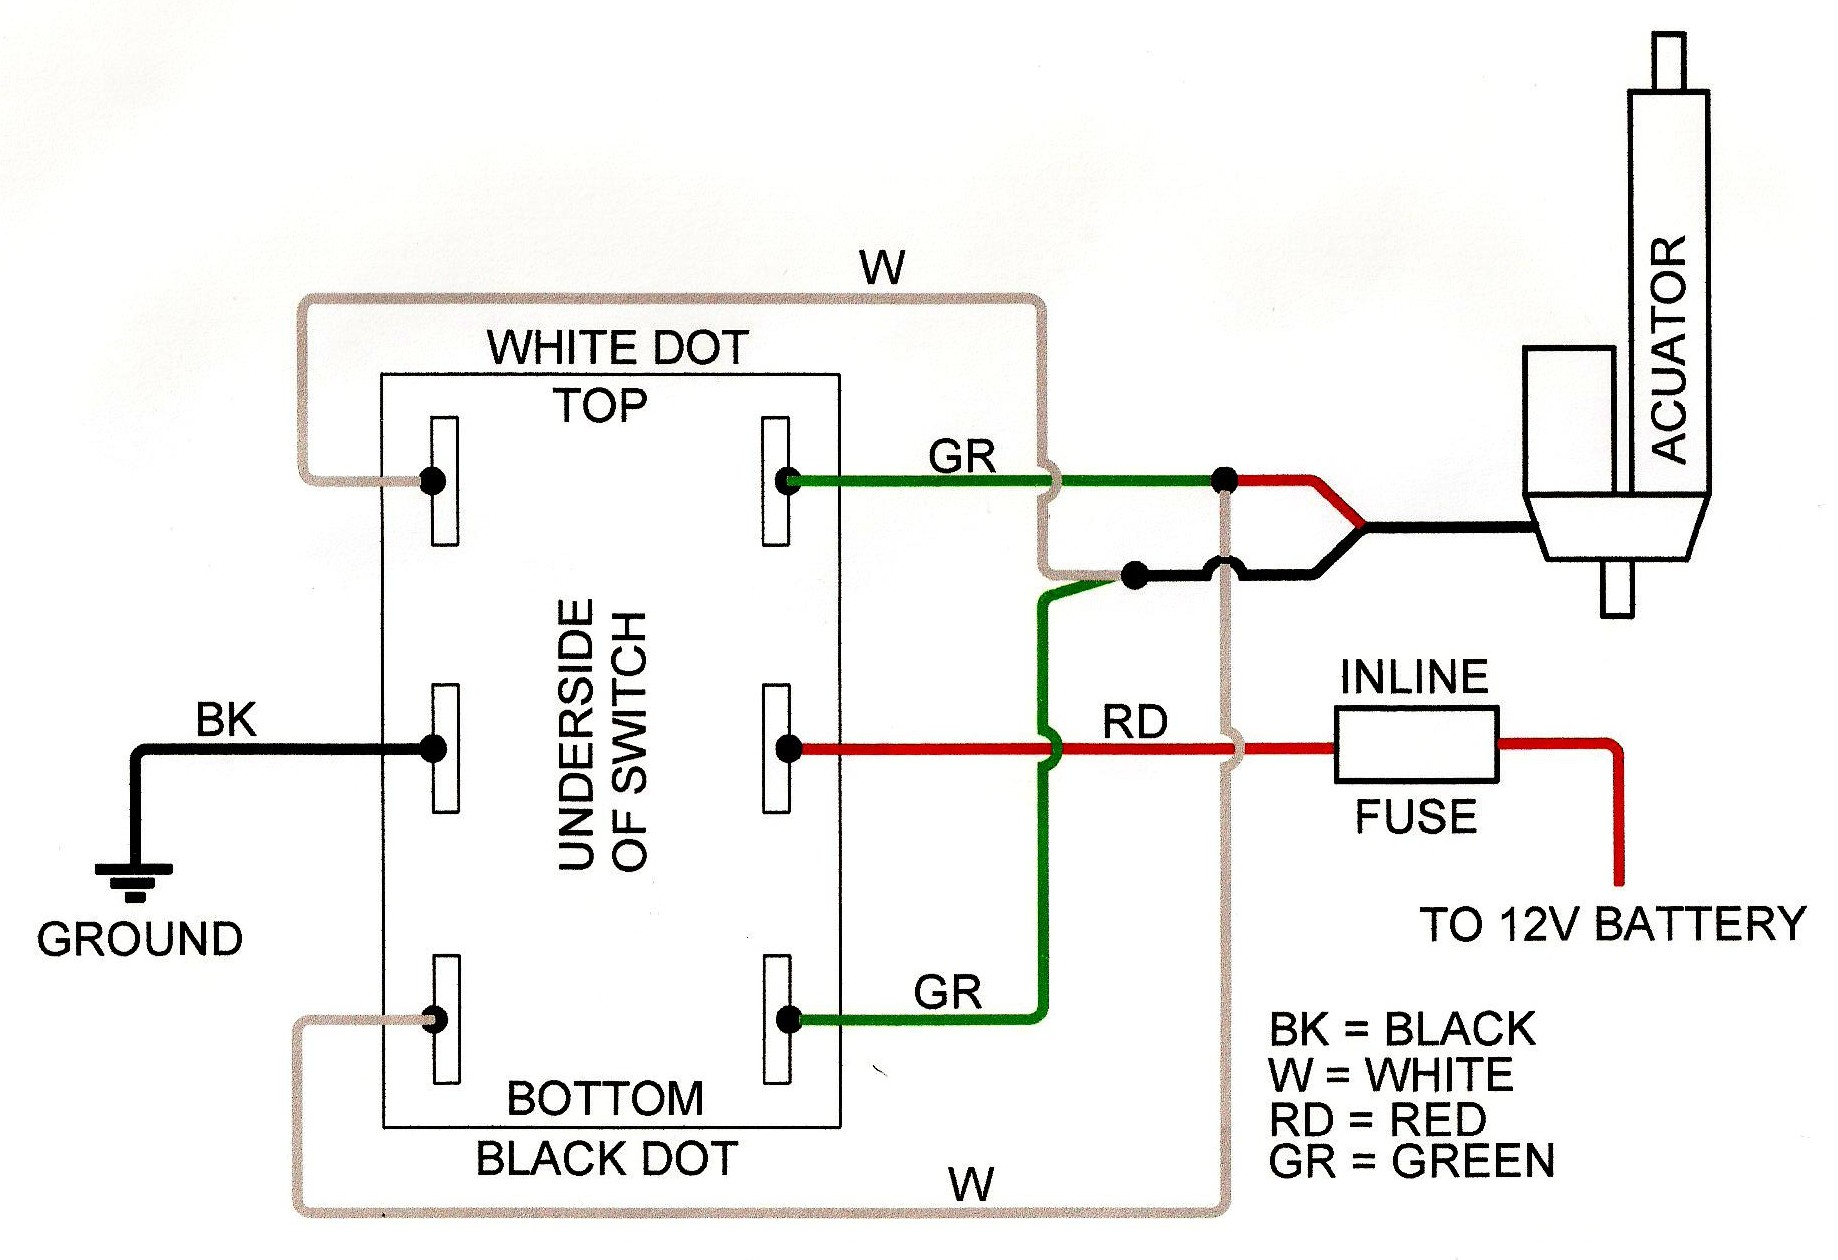 millstone automotive 1970 ford light switch wiring diagram schematic 1953 ford light switch wiring diagram